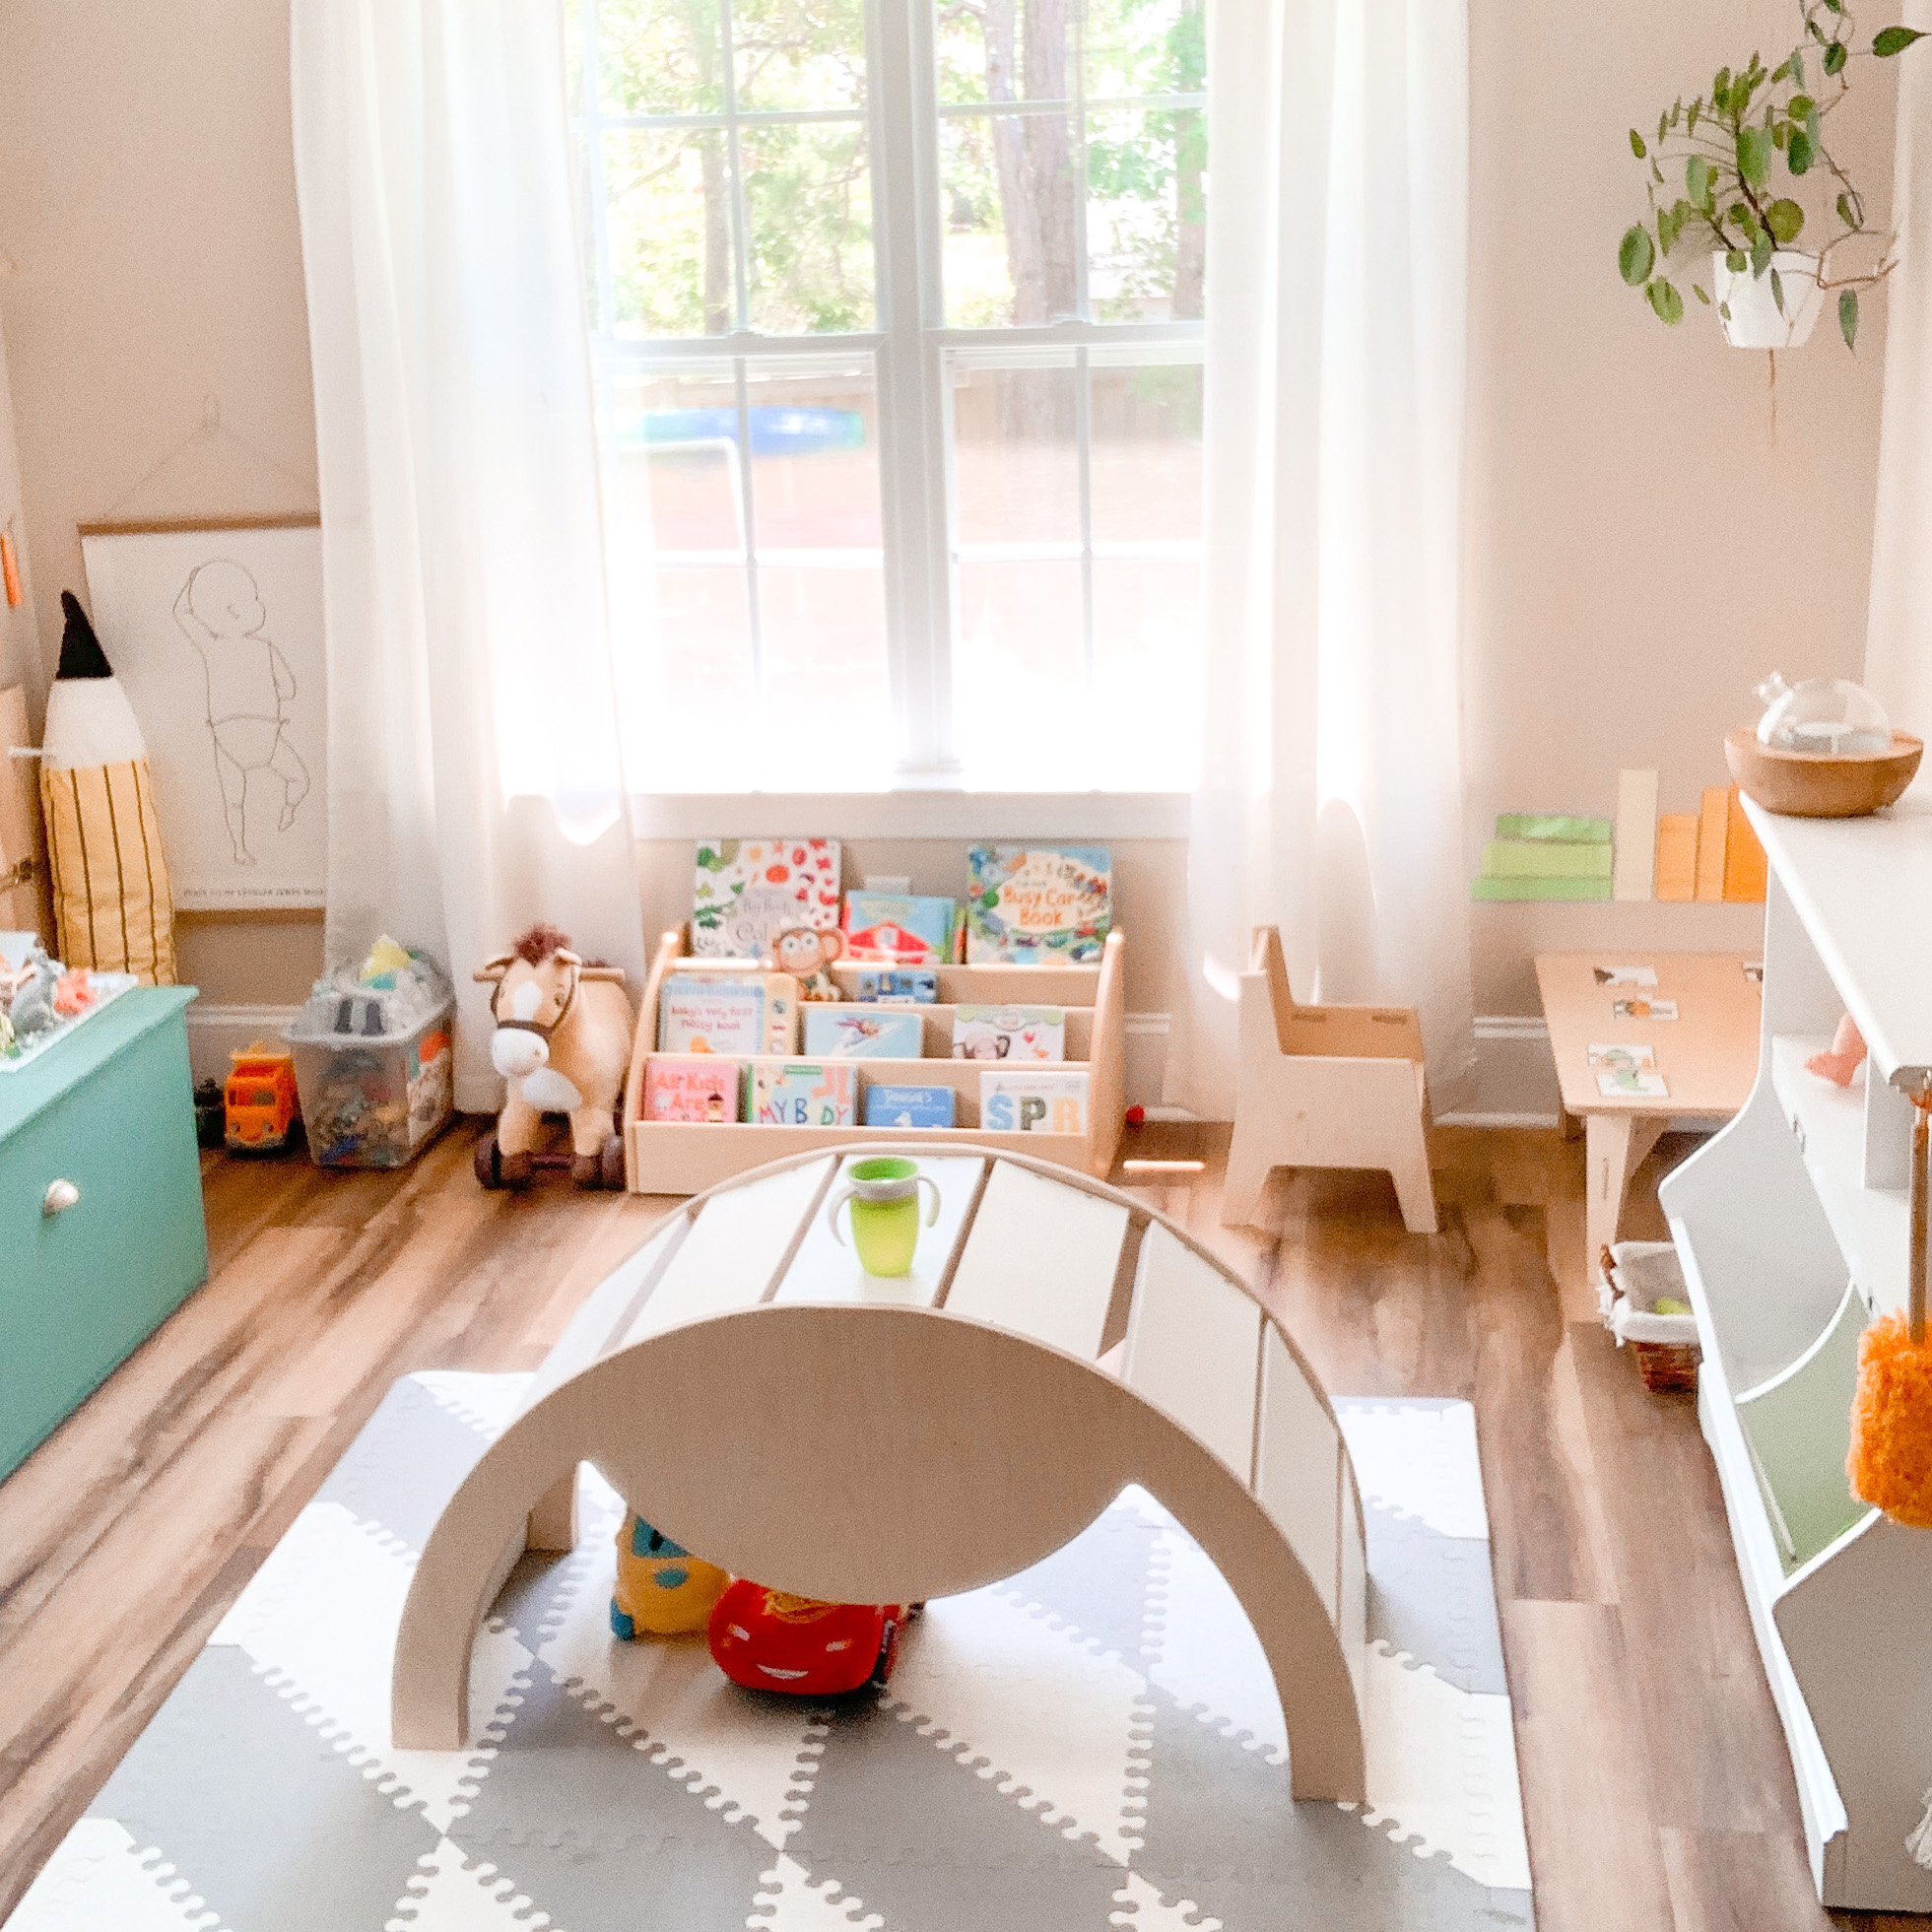 7 Sustainable Children's Toys You Need for Your Playroom